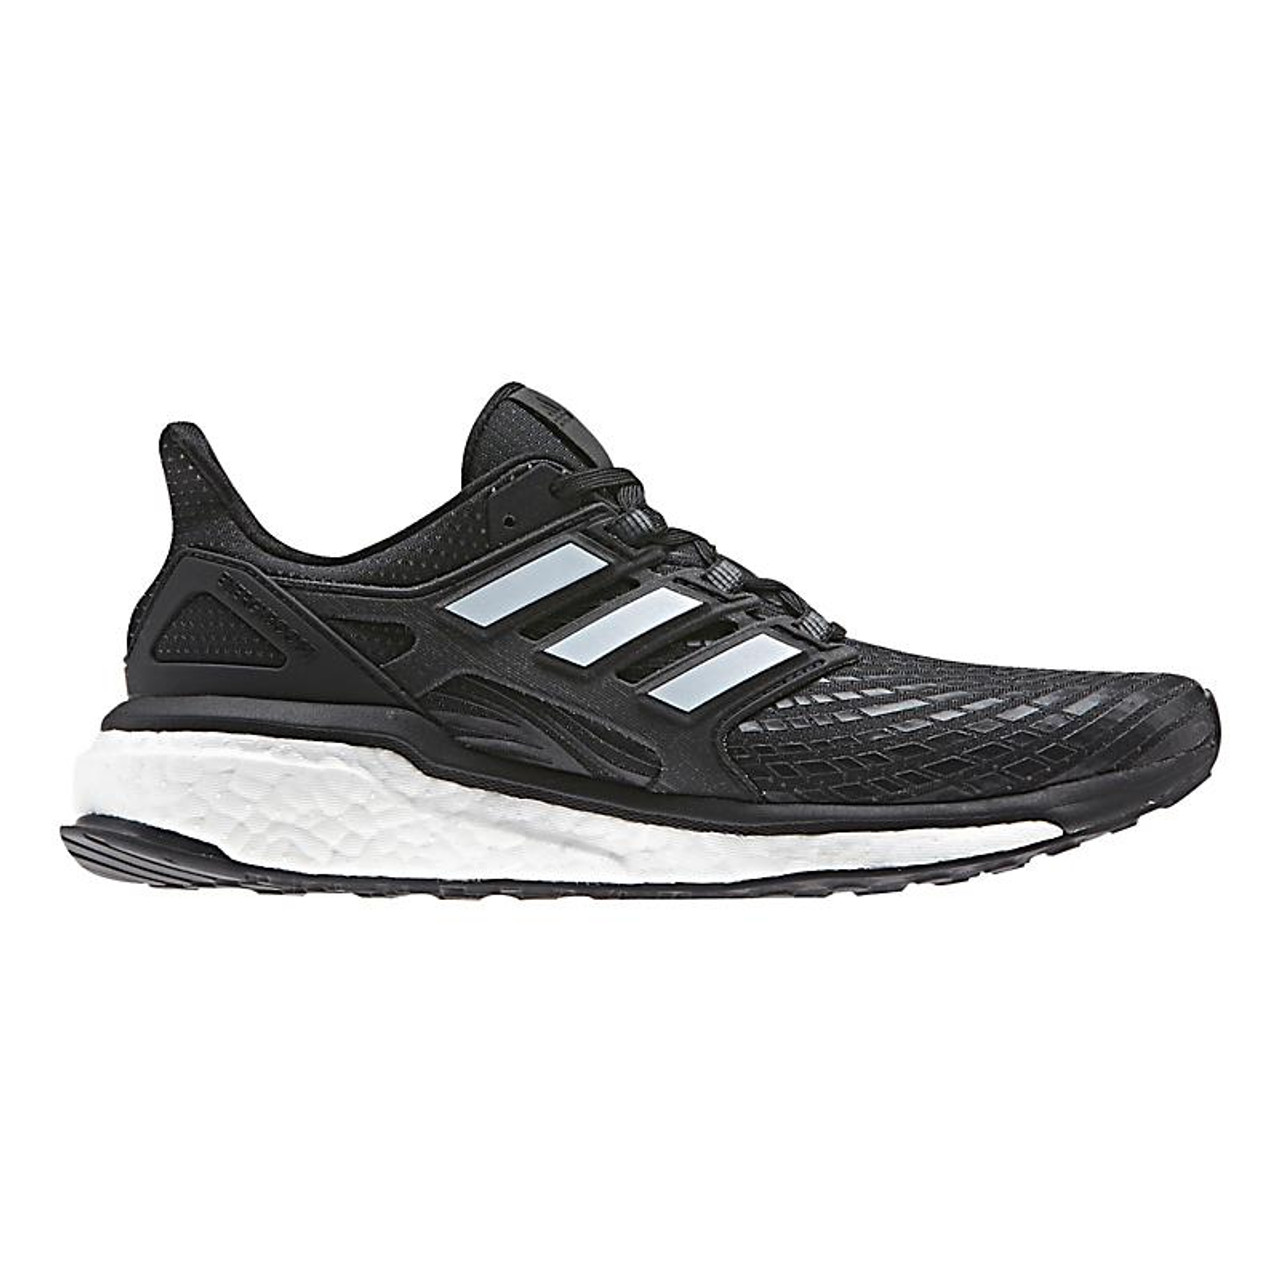 Mujer joven oscuridad Accesible  Women's adidas Energy Boost Running Shoe | Free Shipping